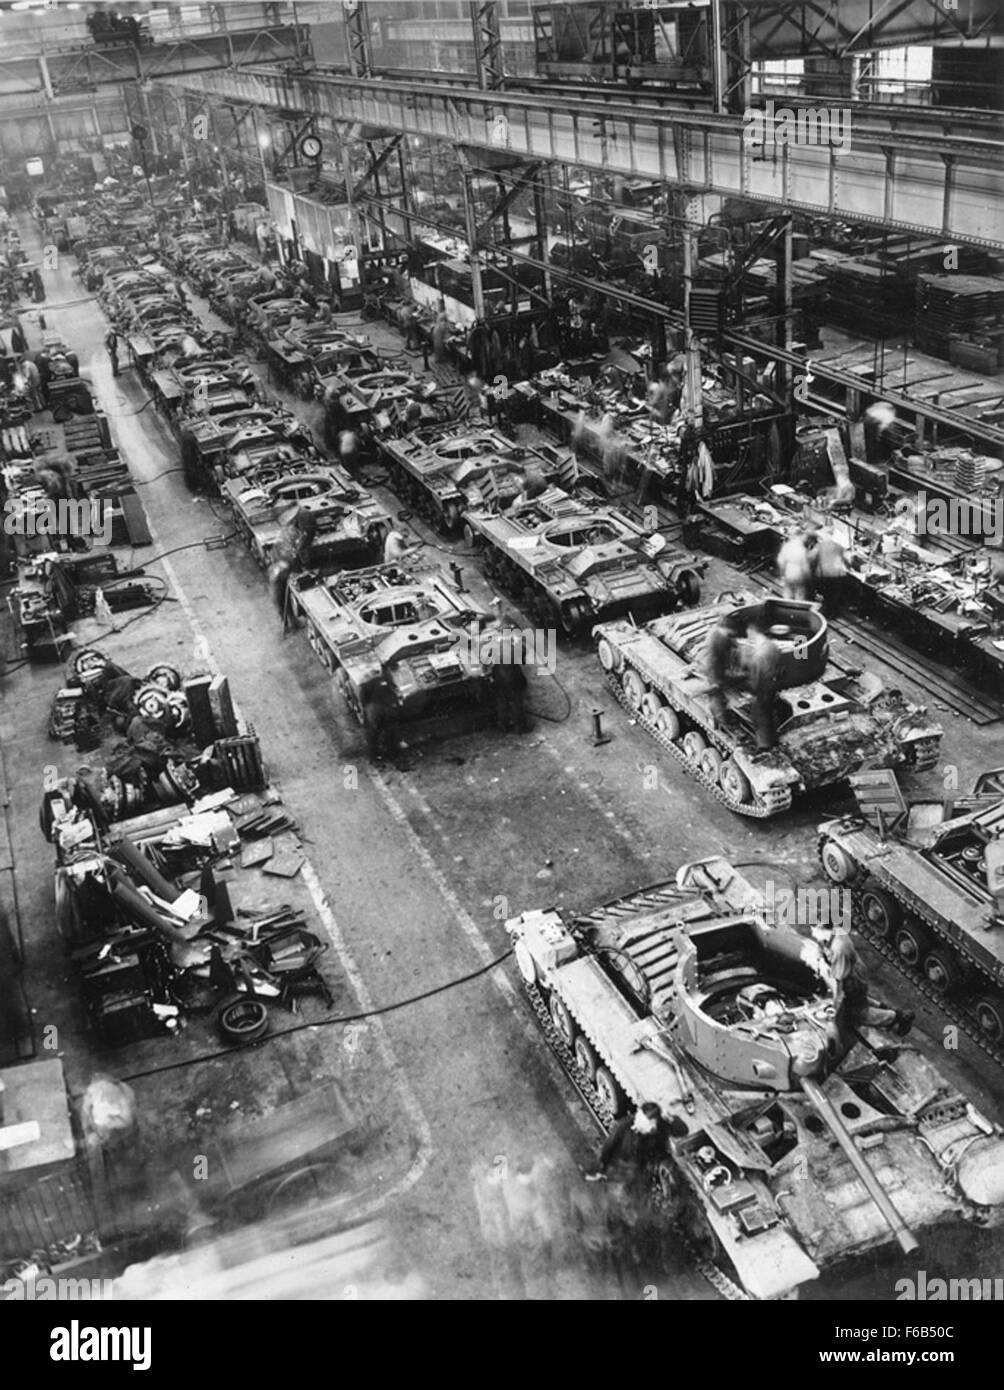 Valentine Tanks on the Assembly Line - Stock Image